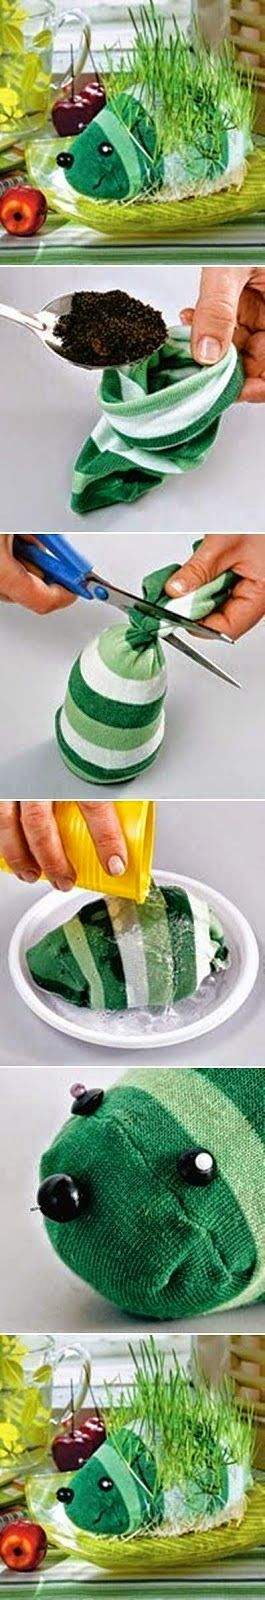 30 useful and practical crafts for old socks | Do it yourself ideas and projects